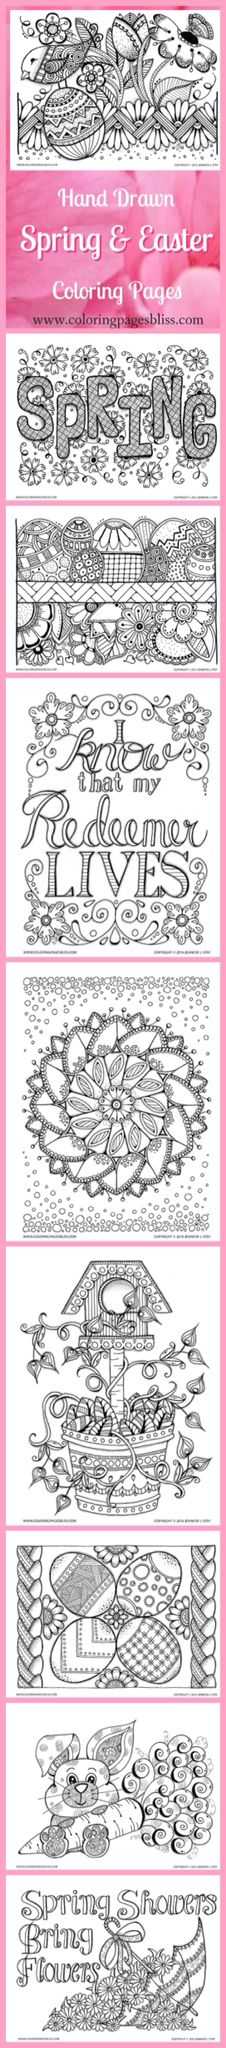 Coloring Pages For Adults Spring And Easter Are You Looking Flowers